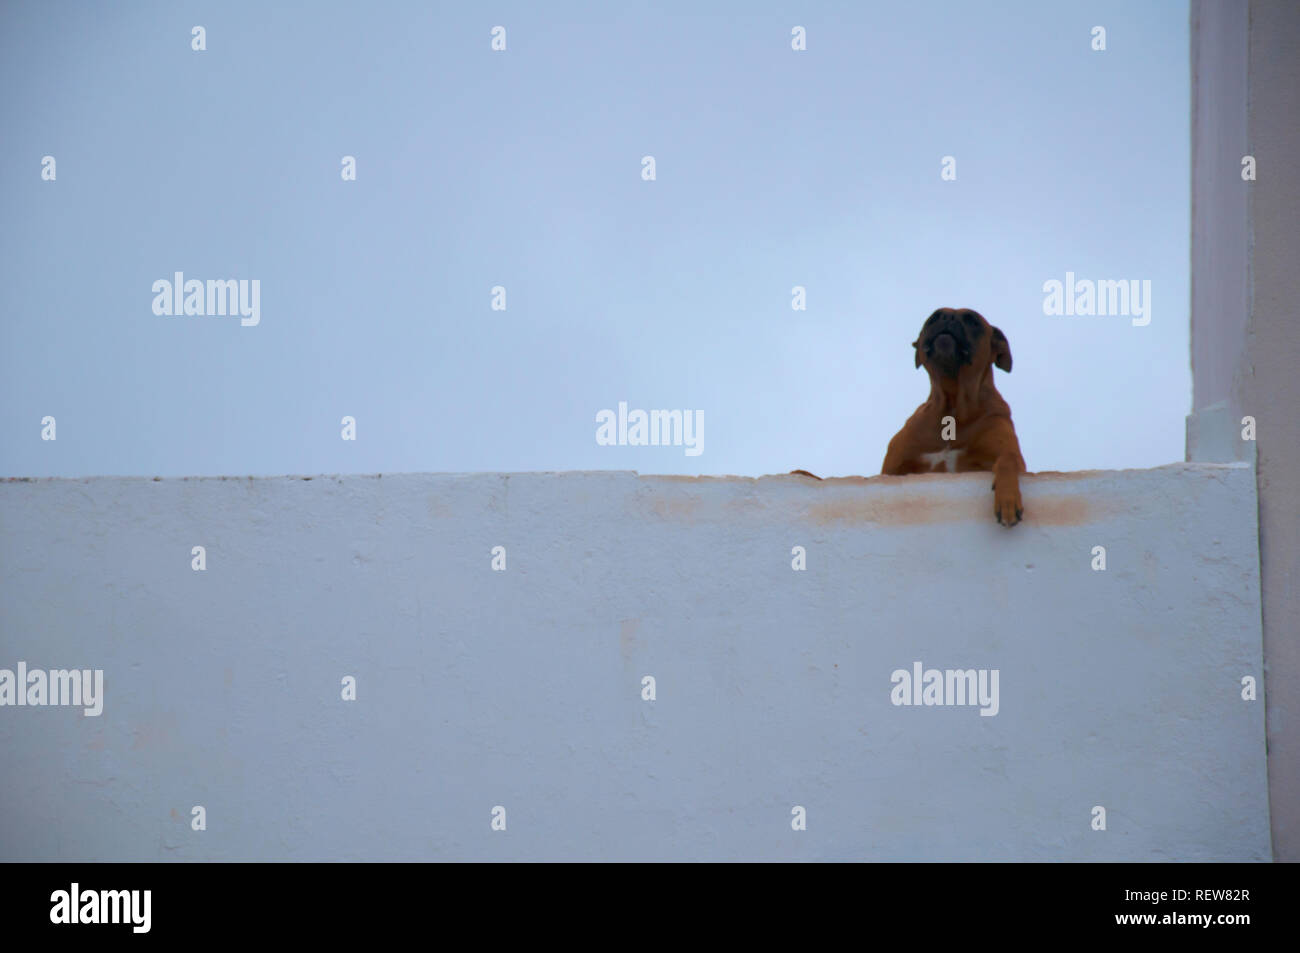 Brown big dog howls on the roof, white walls, simple background - Stock Image